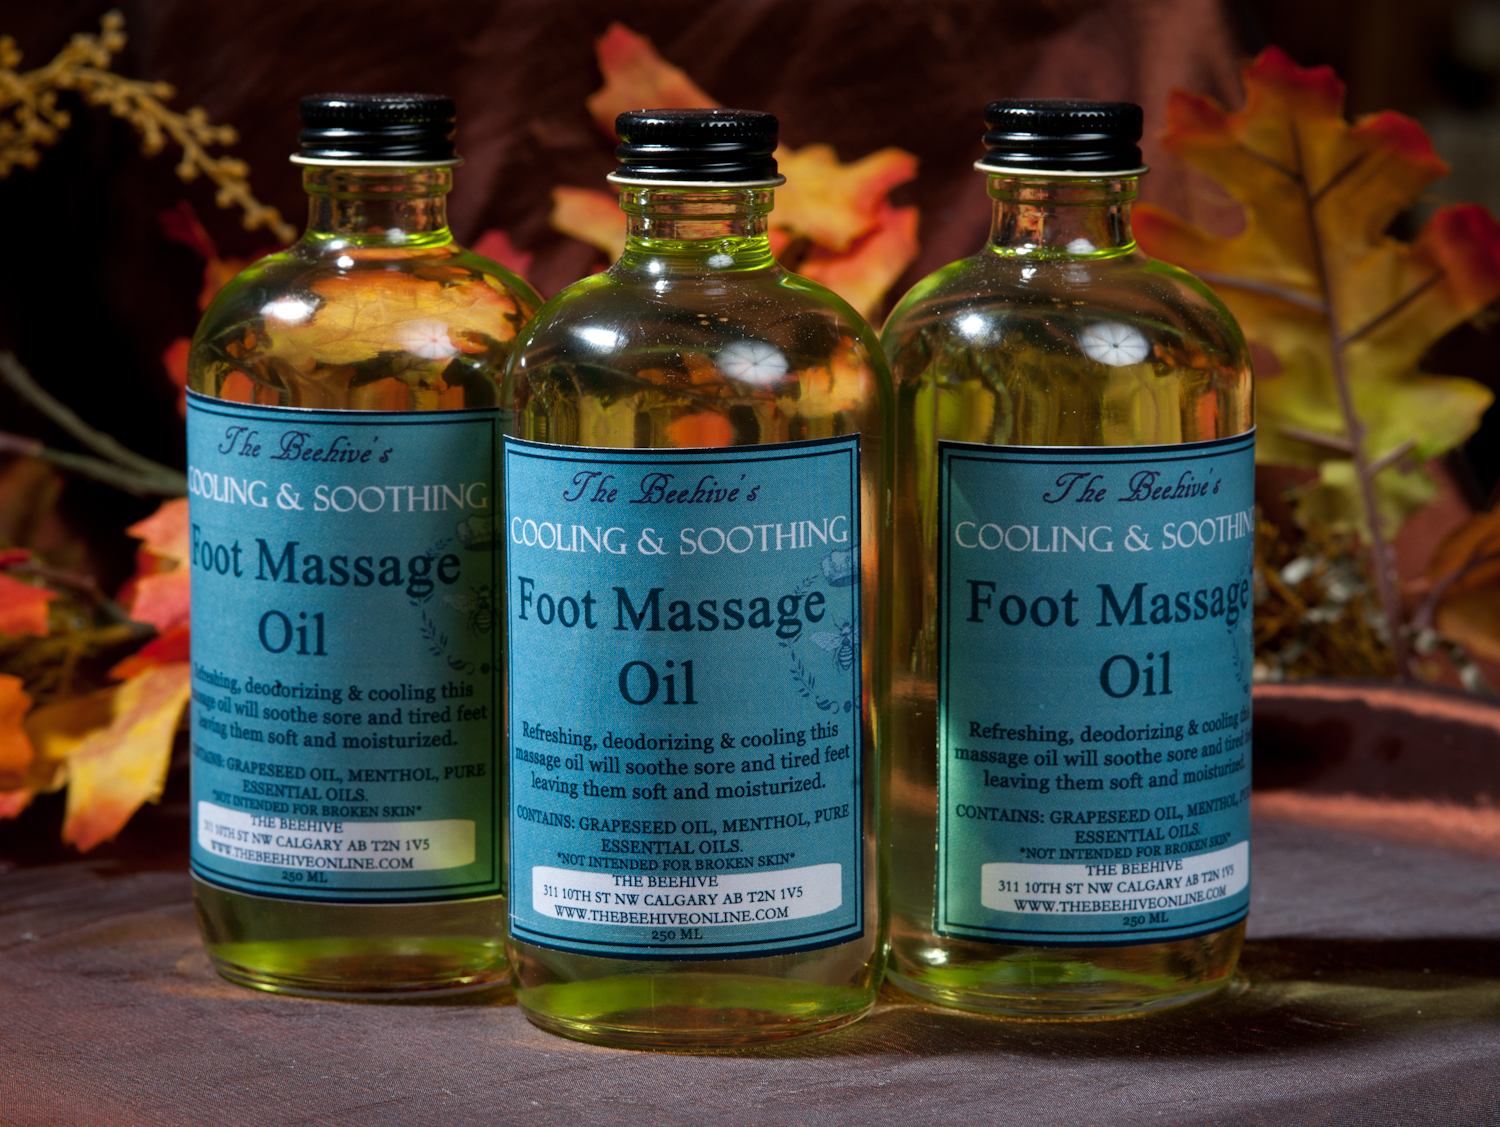 Cooling & Soothing Foot Massage Oil